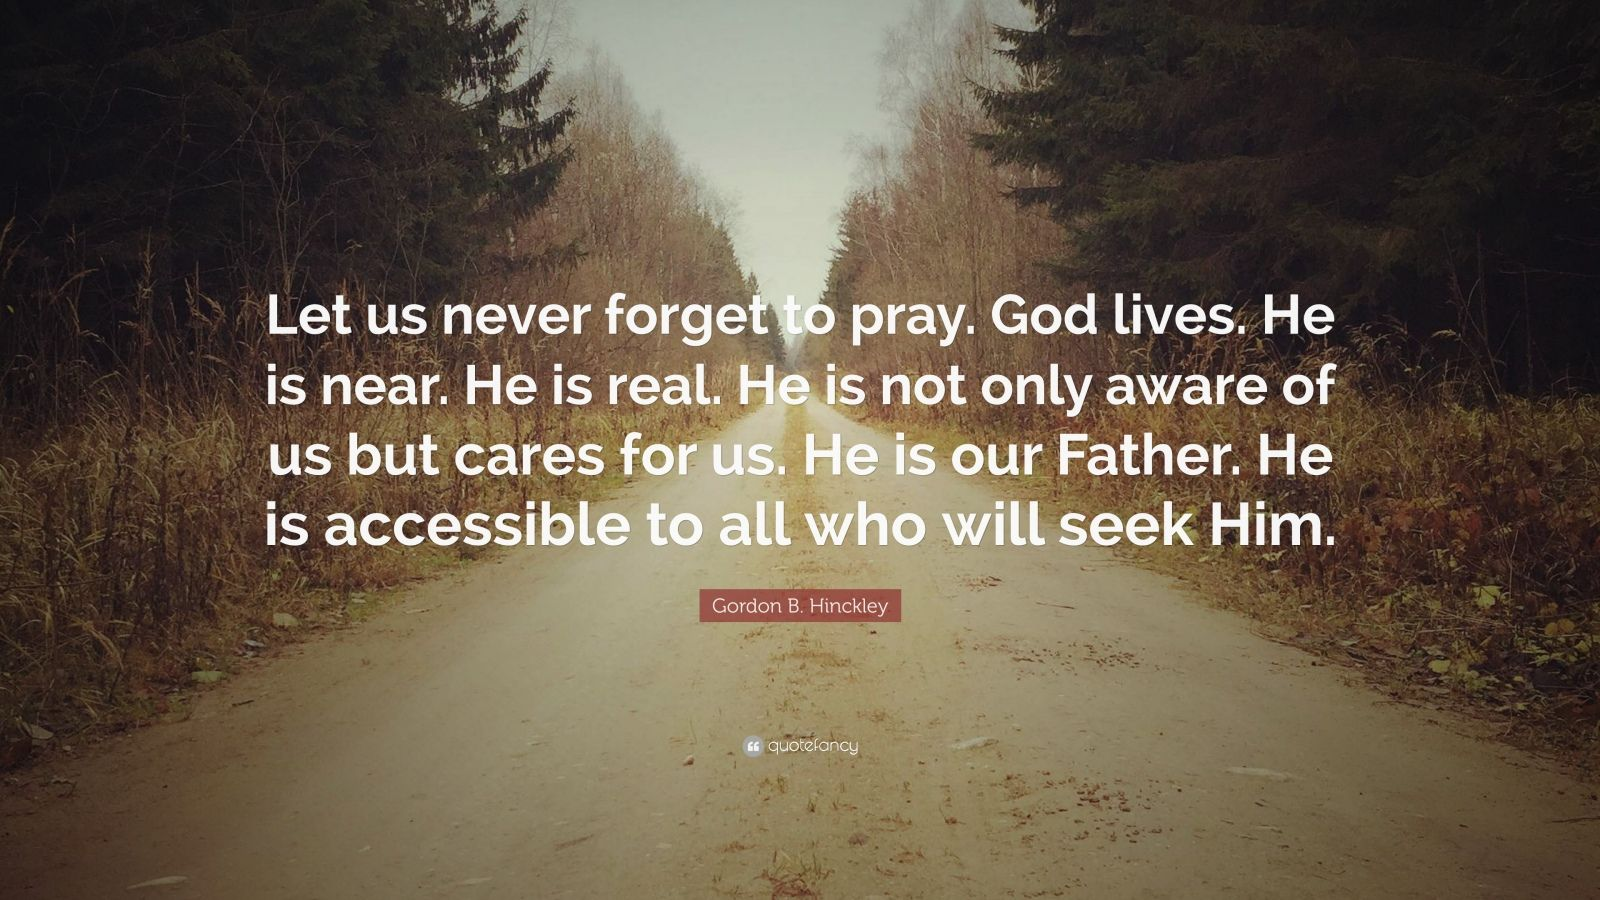 """Gordon B. Hinckley Quote: """"Let us never forget to pray. God lives. He is near. He is real. He is not only aware of us but cares for us. He is our Father. He is accessible to all who will seek Him."""""""